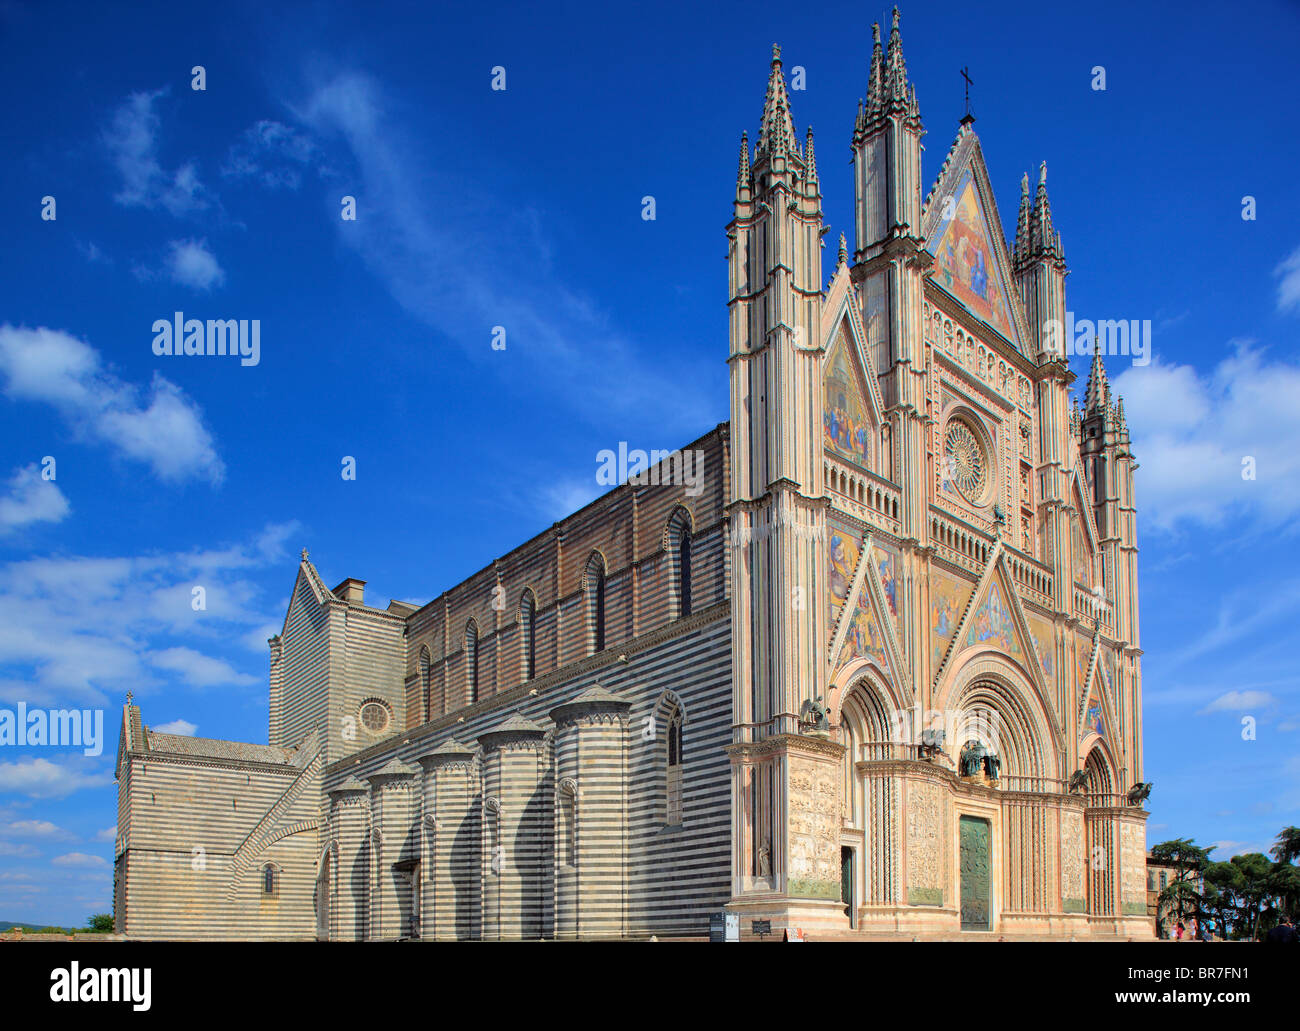 The Duomo di Orvieto is a large 14th century Roman Catholic cathedral situated in the town of Orvieto in Umbria, - Stock Image